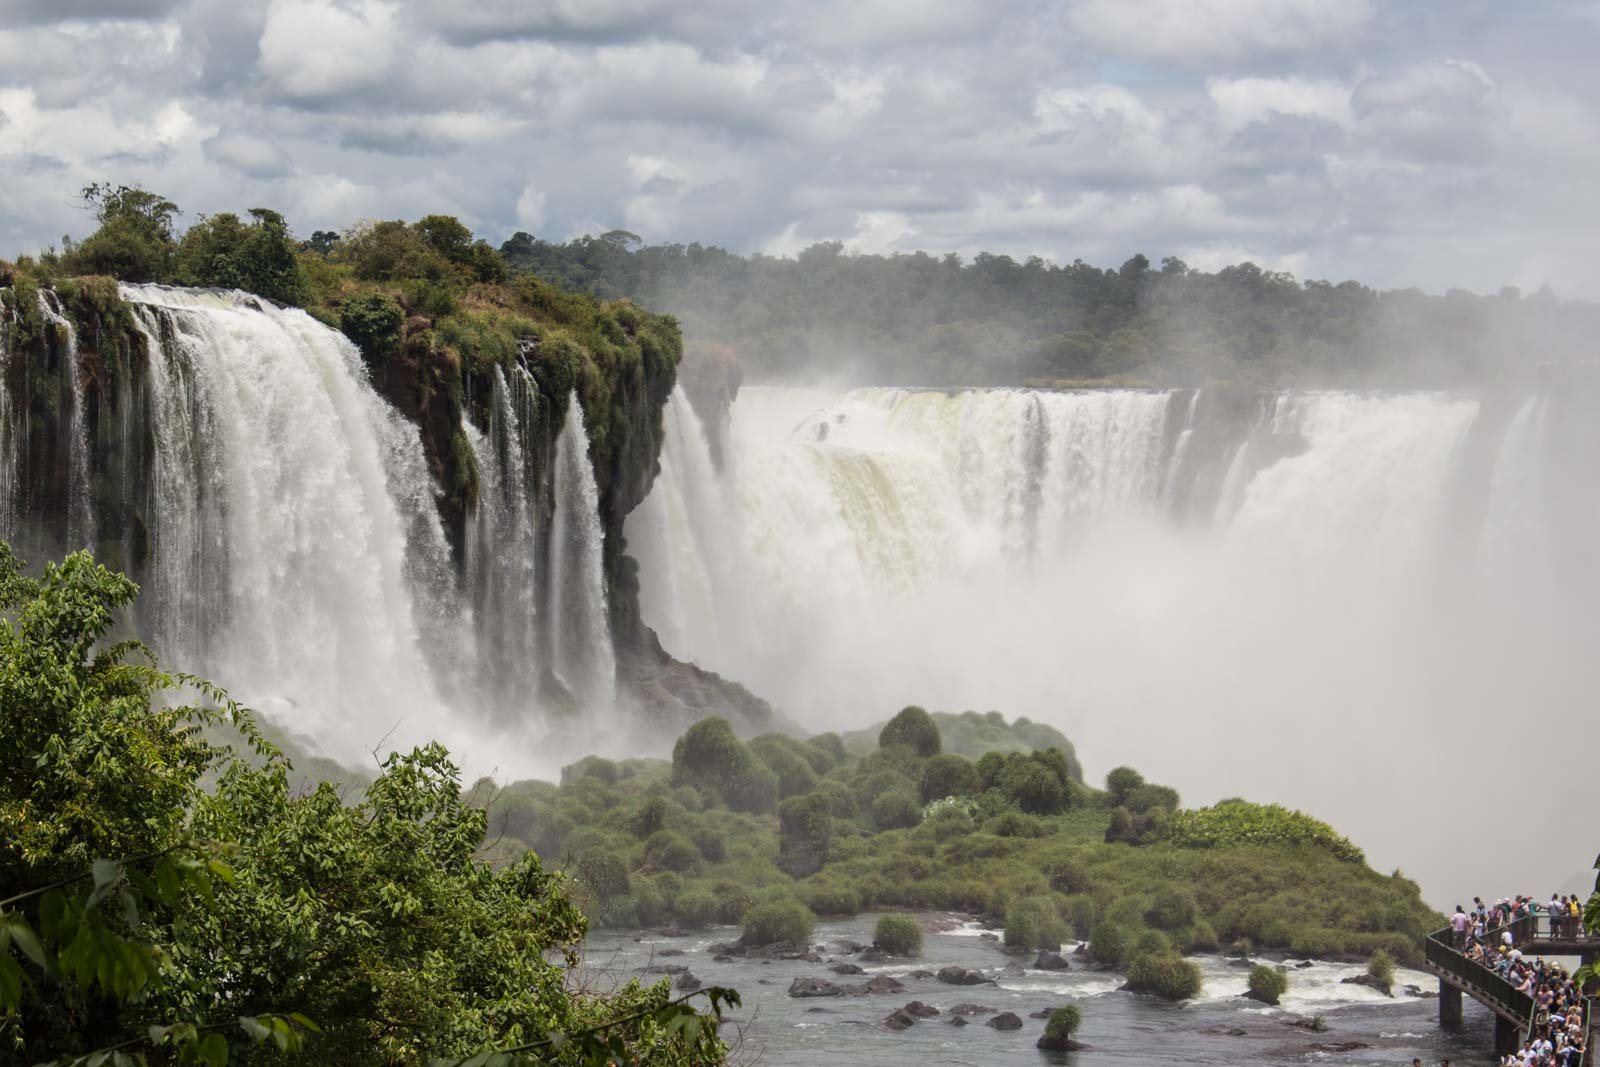 Best place to see Iguazu Falls, Argentina or Brazil